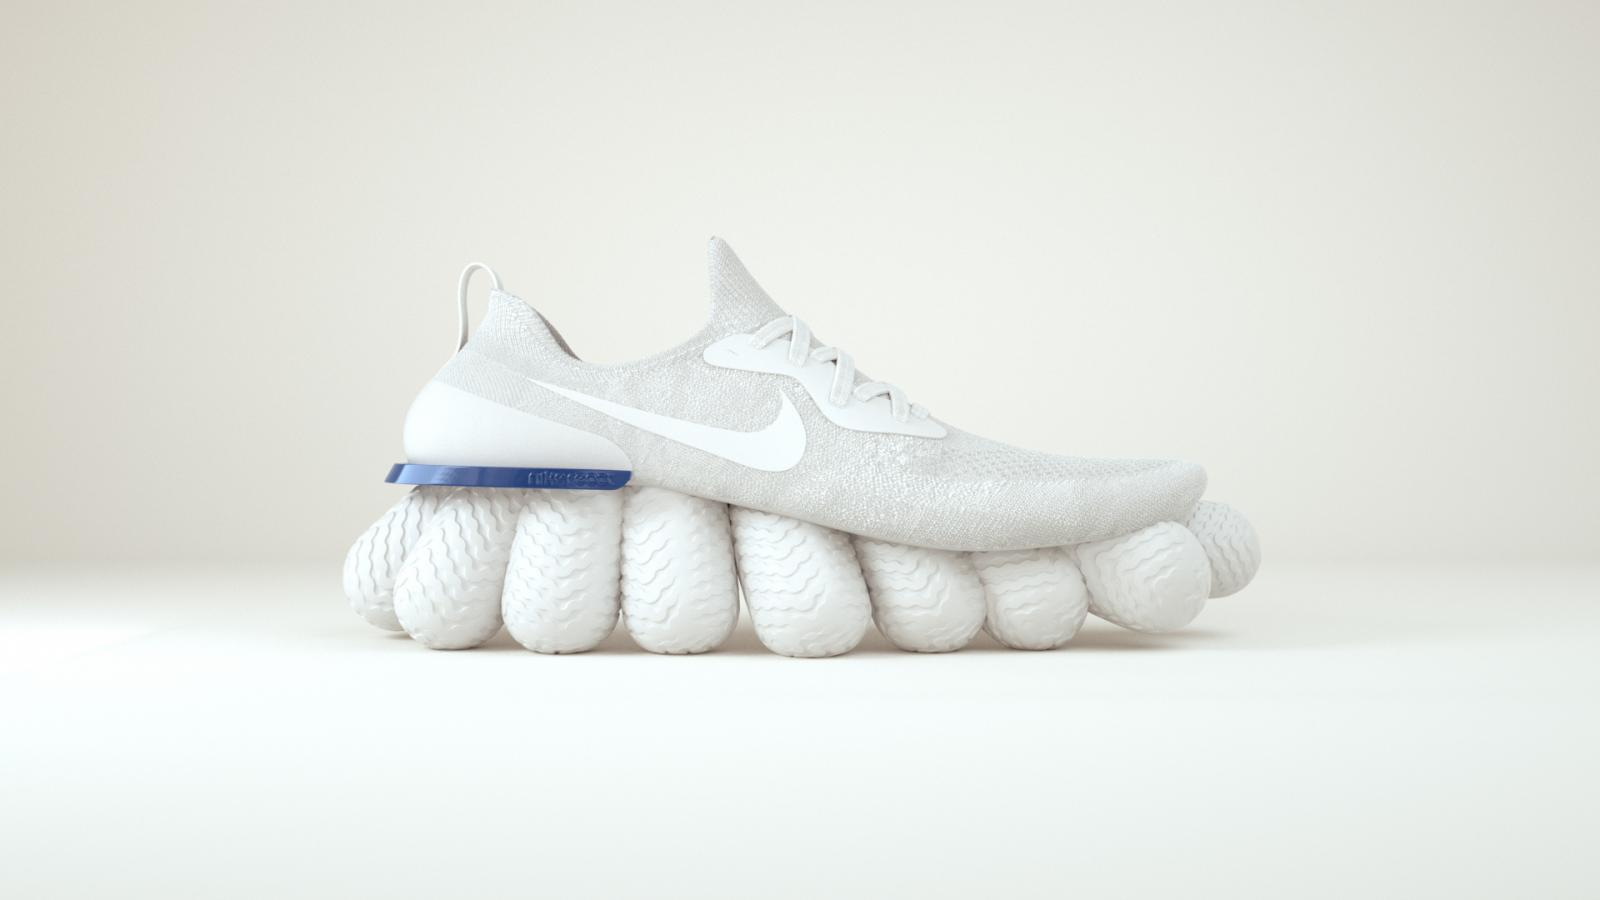 Art Direction for Nike Epic React Flyknit